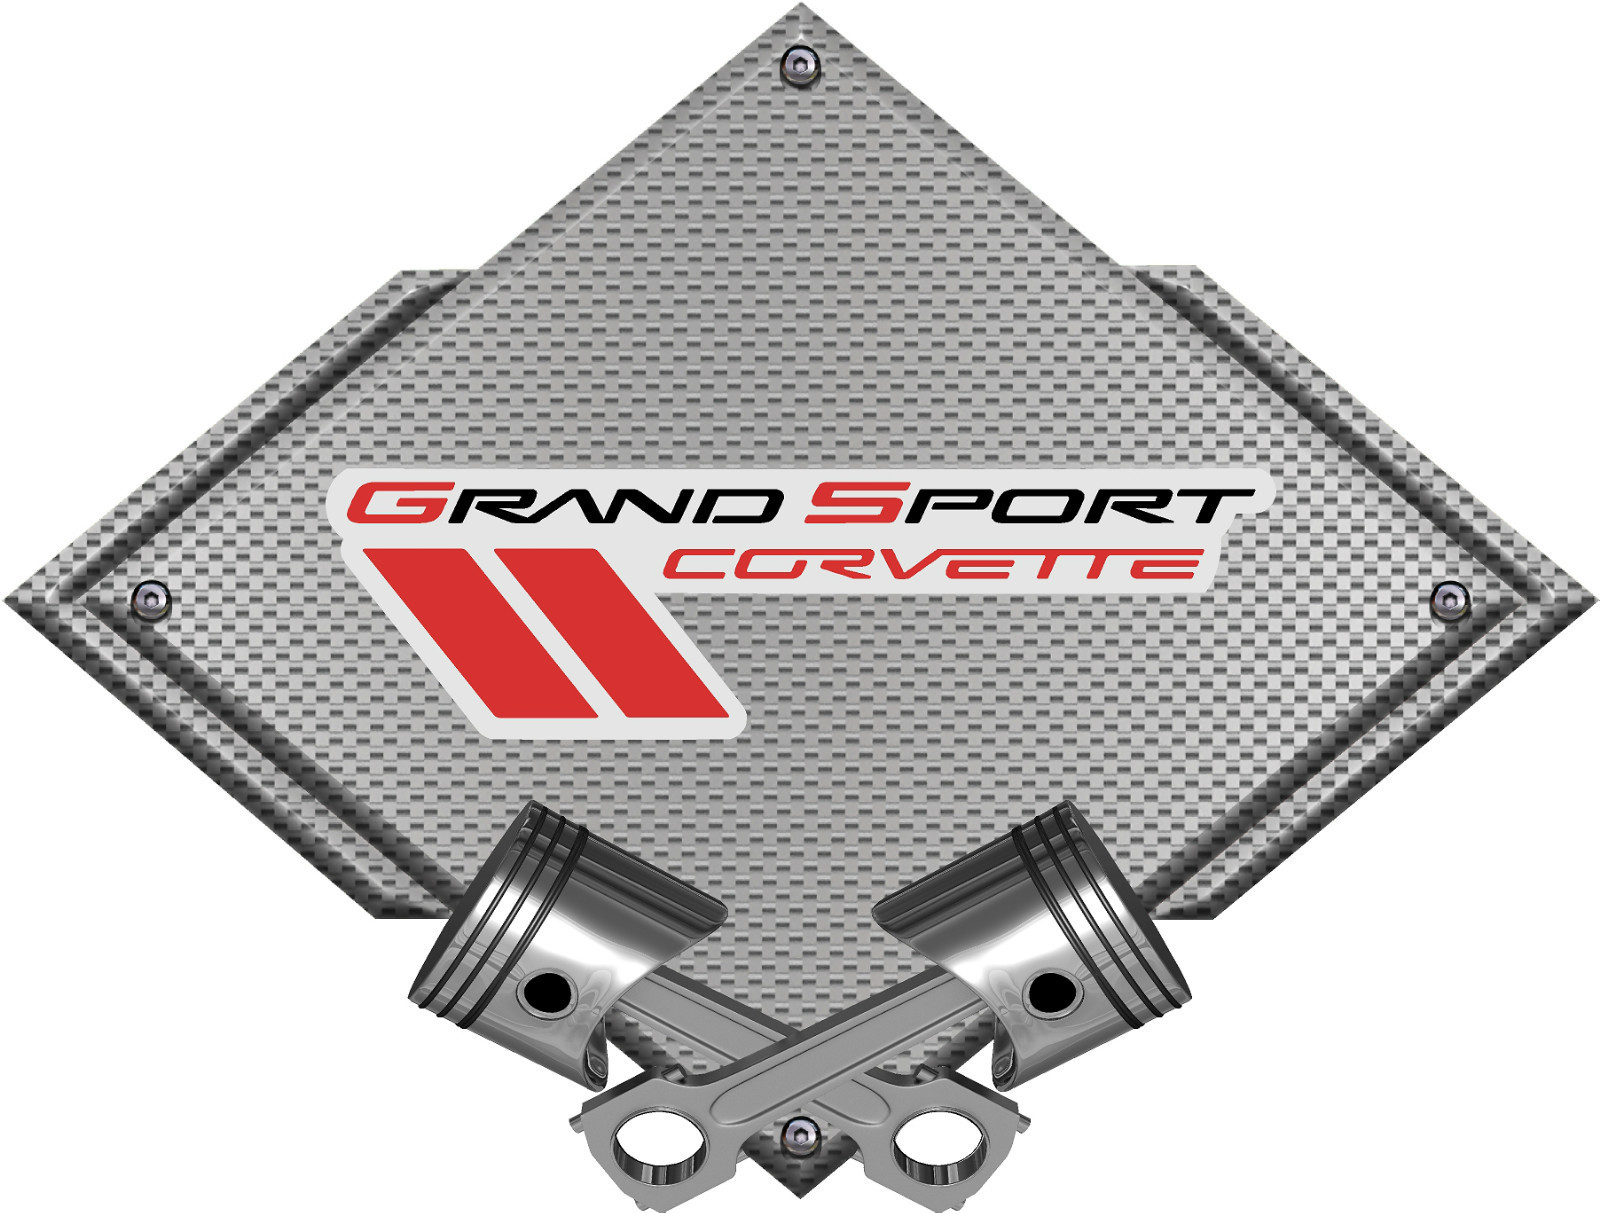 Corvette Grand Sport emblem - Click Image to Close